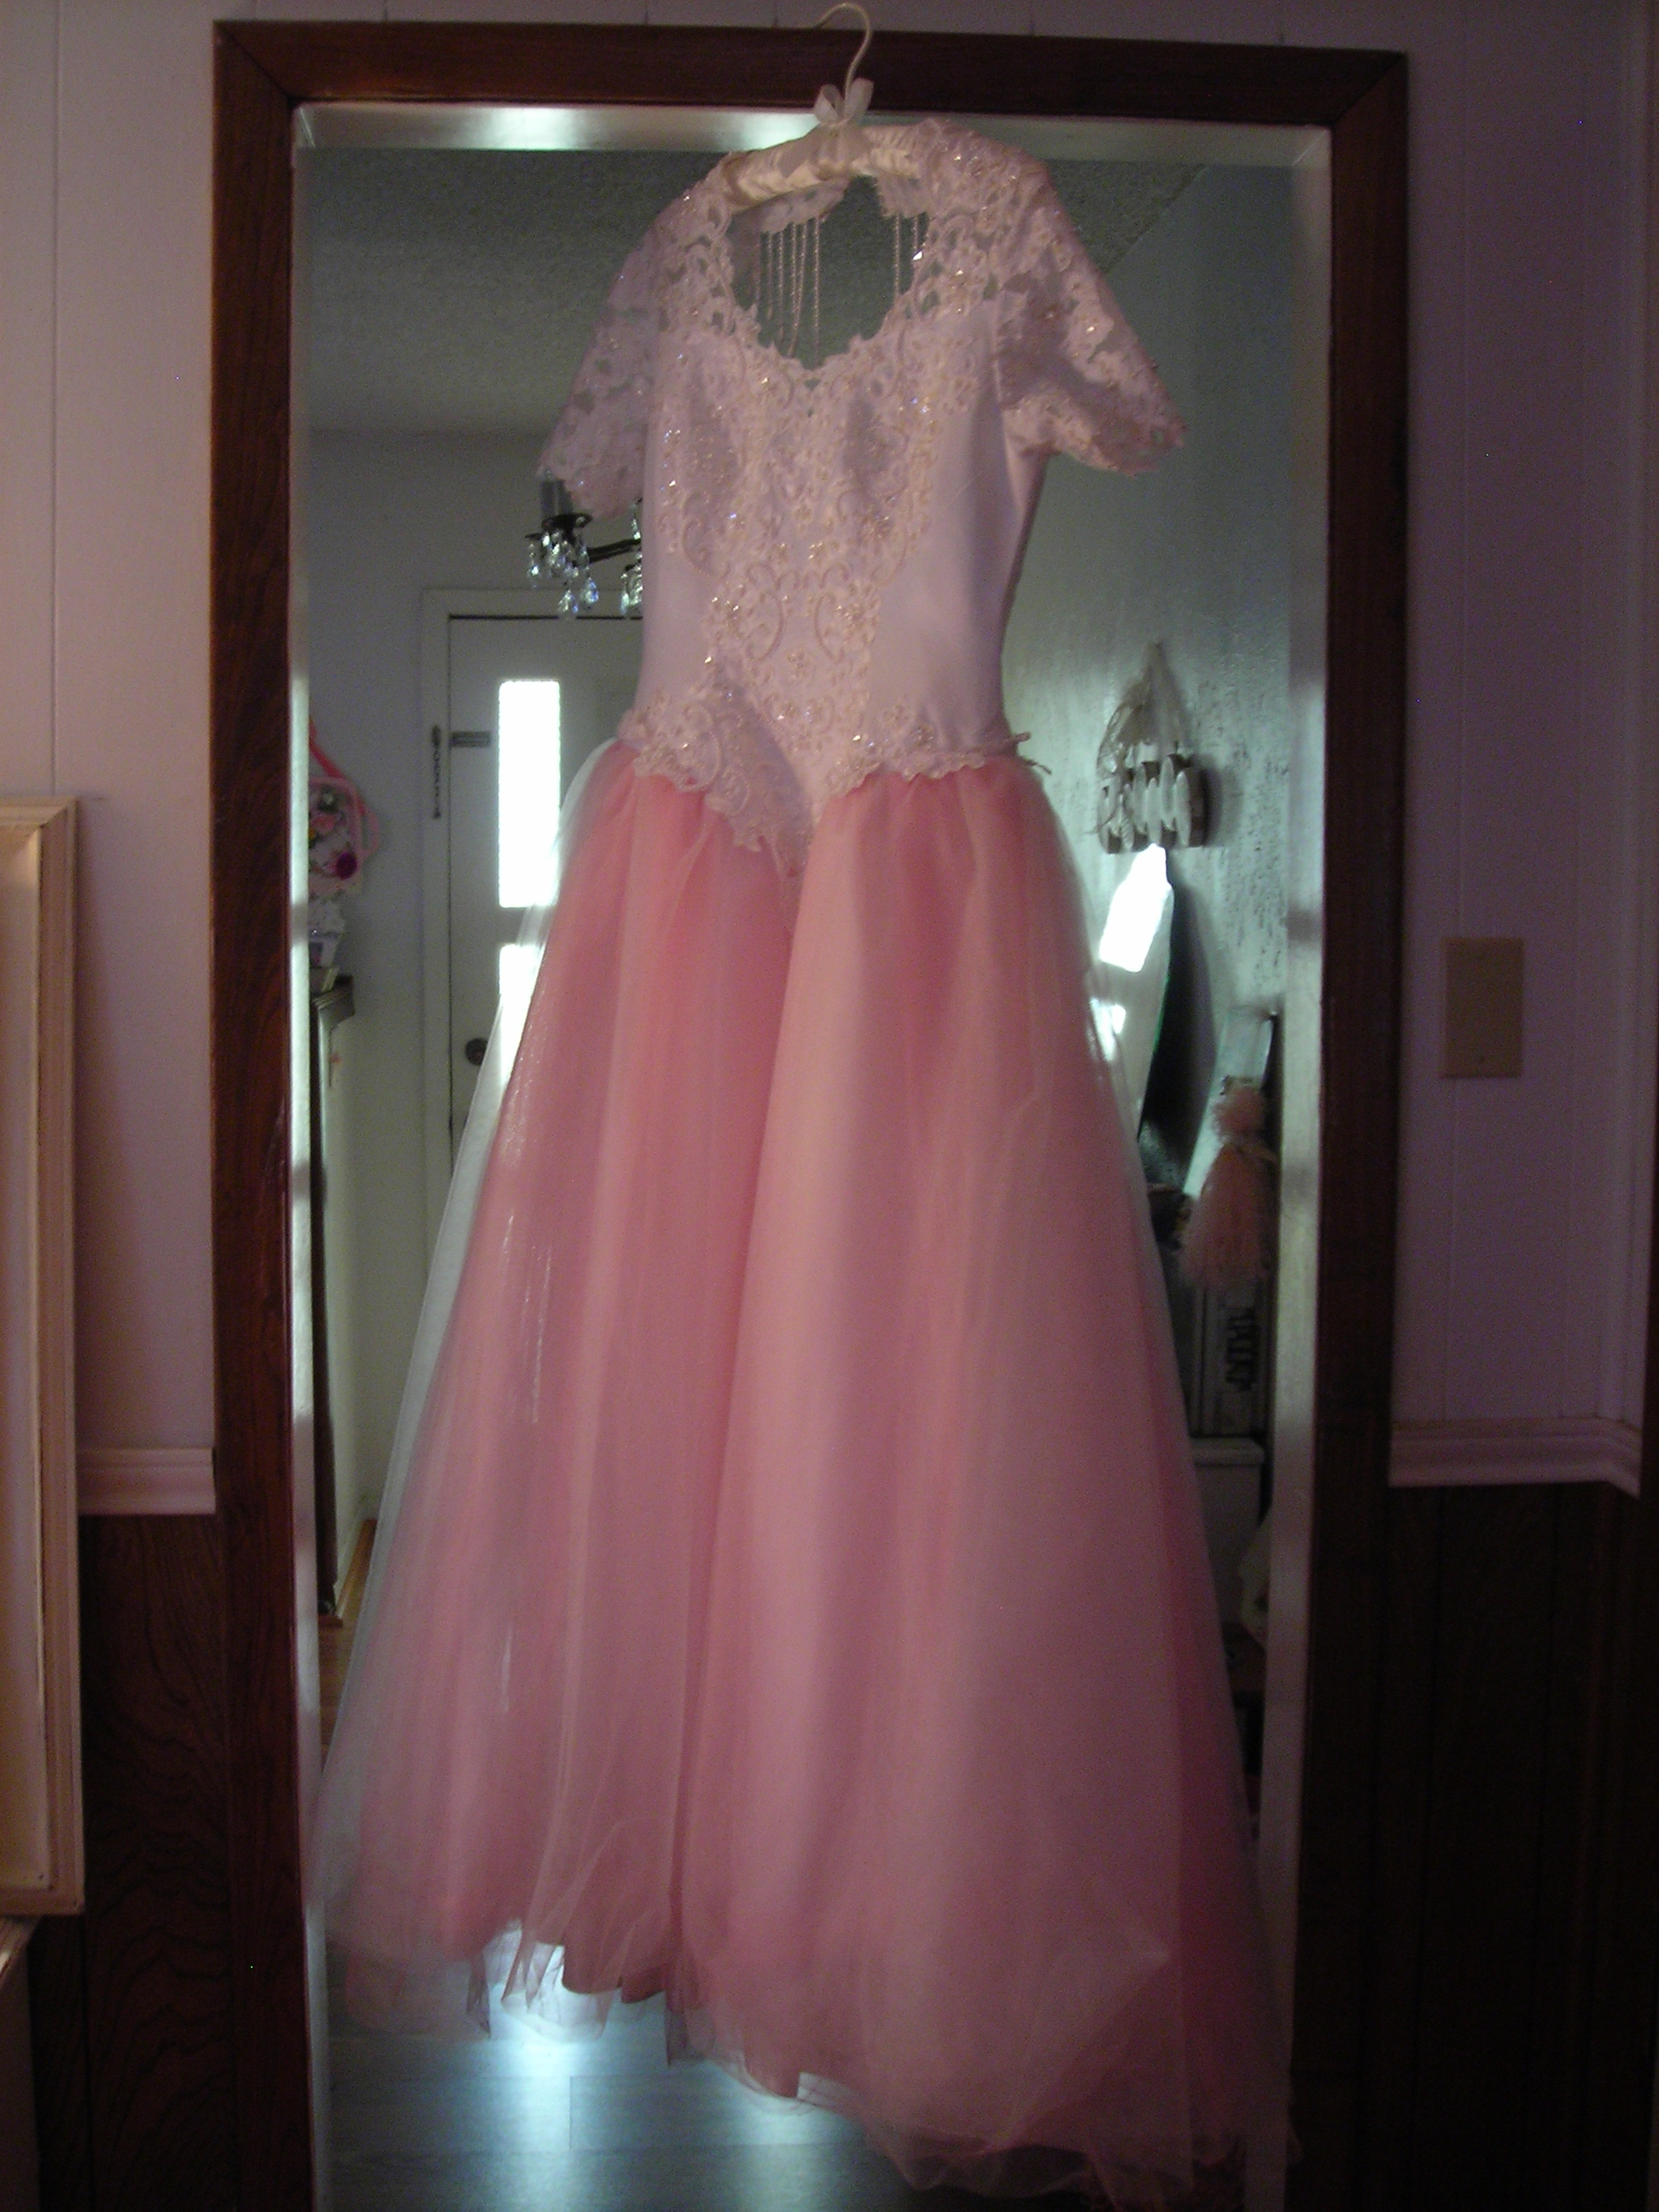 ohmygawd. i fell in love with this fru fru dress the minute i saw it at harker heights GW barn! the BARN?!?!?!